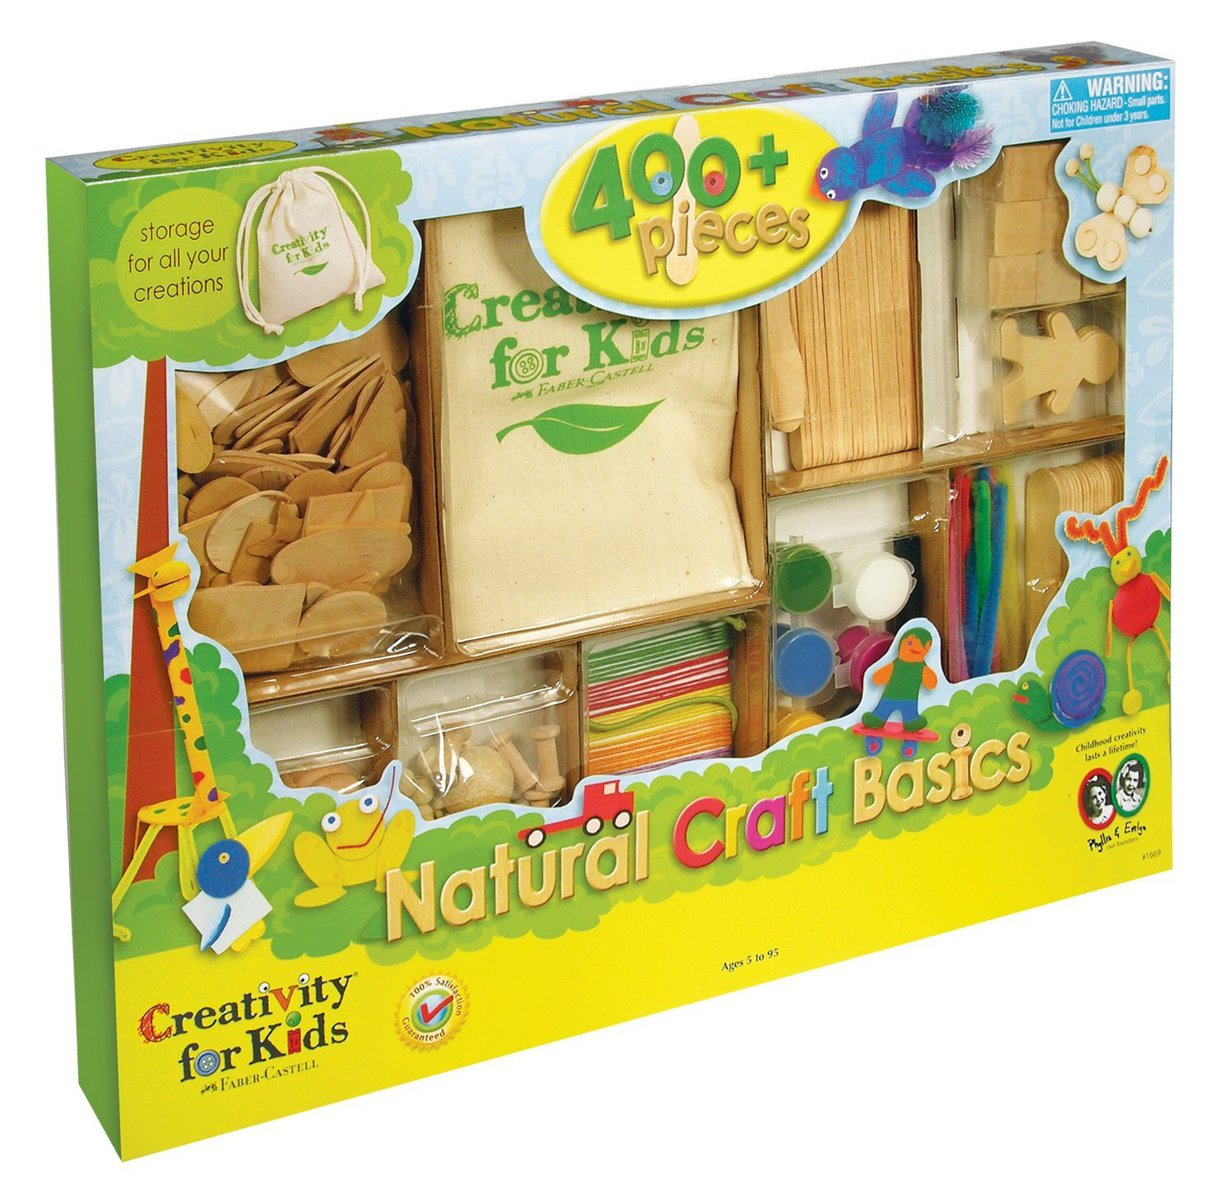 Kids wood craft kits - Wood Craft Kits For Kids Wooden Craft Kits For Kids Kids Wood Craft Kits Kids